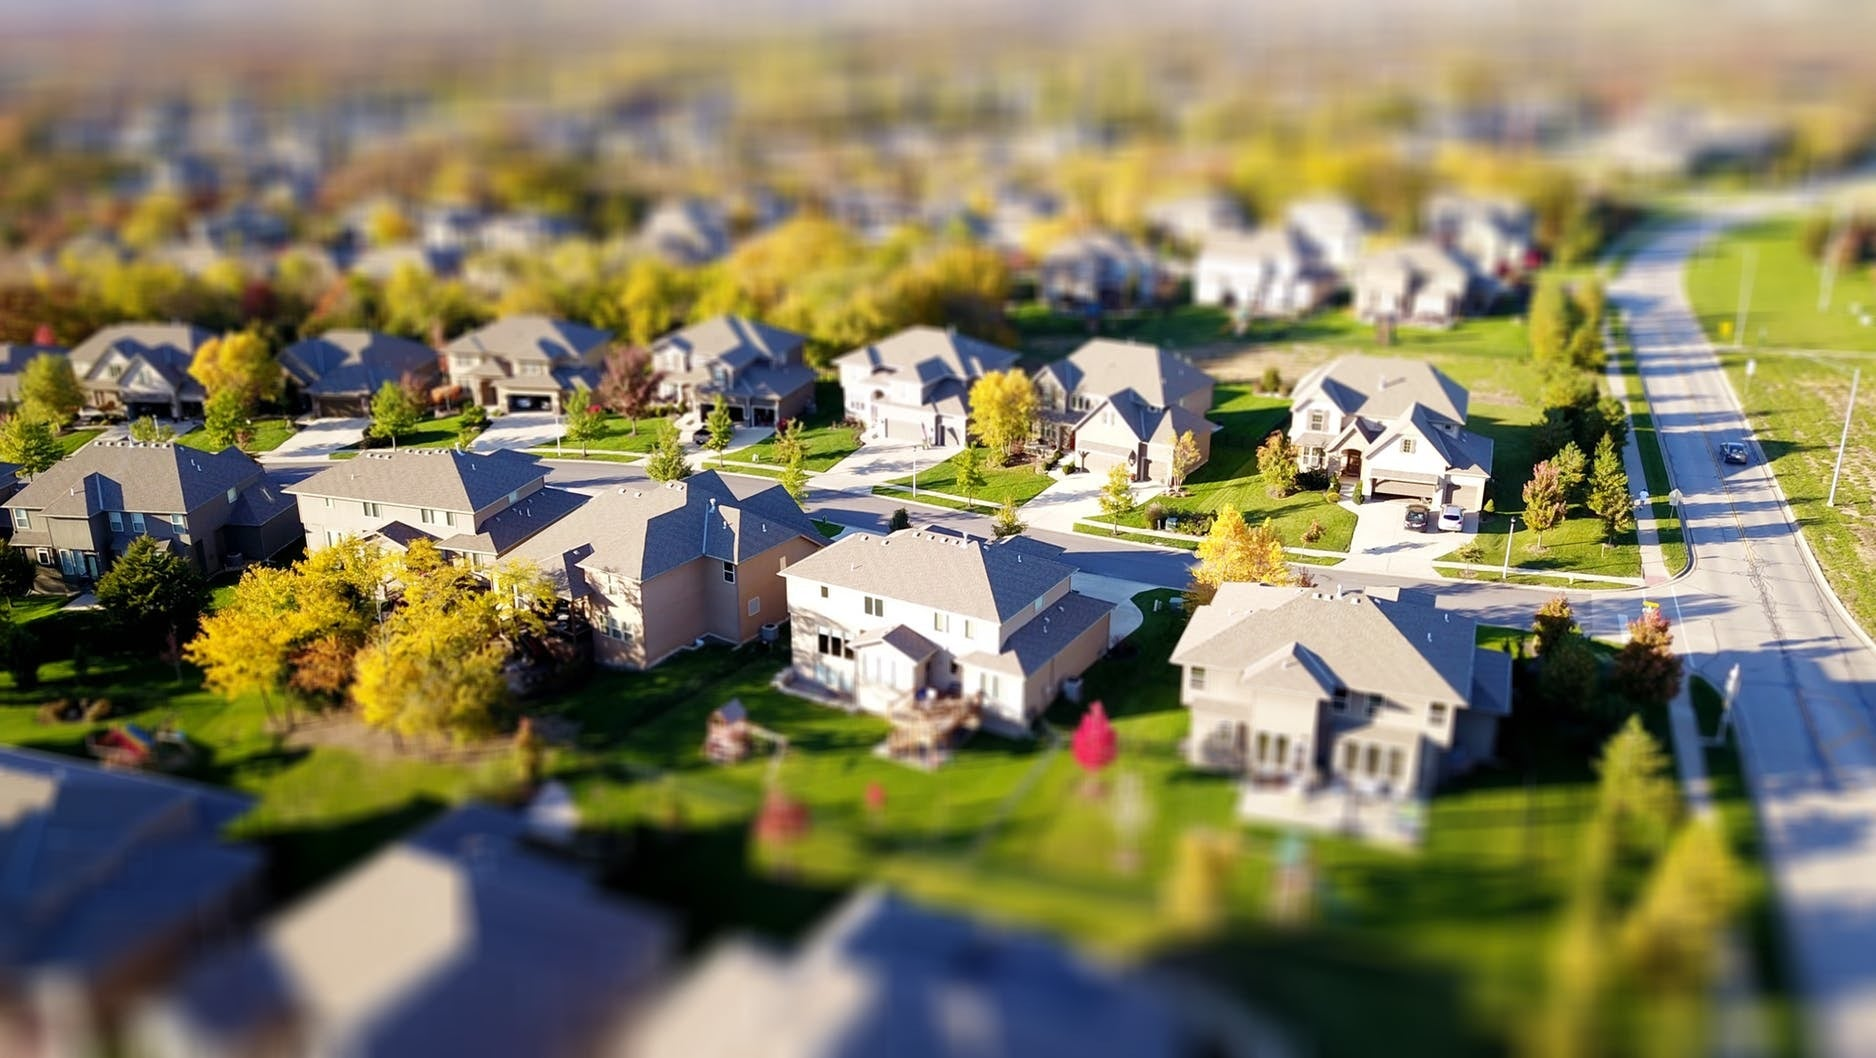 How To Save Money On Housing And Transportation Costs